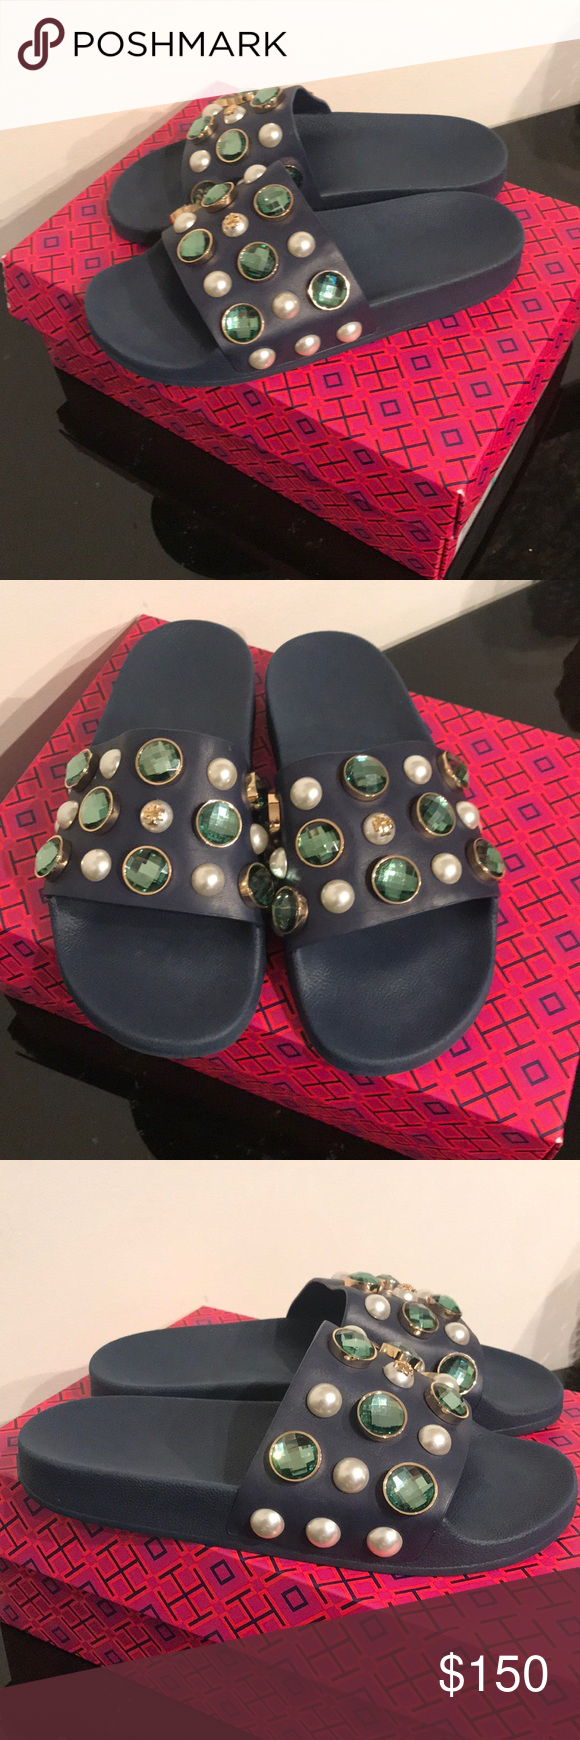 6666c03536e73 NEW TORY BURCH VAIL JEWELED FLAT SLIDE SANDALS  225.00 NEW TORY BURCH VAIL  JEWELED FLAT SLIDE SANDALS size 7 in blue color. With box no dust bag.